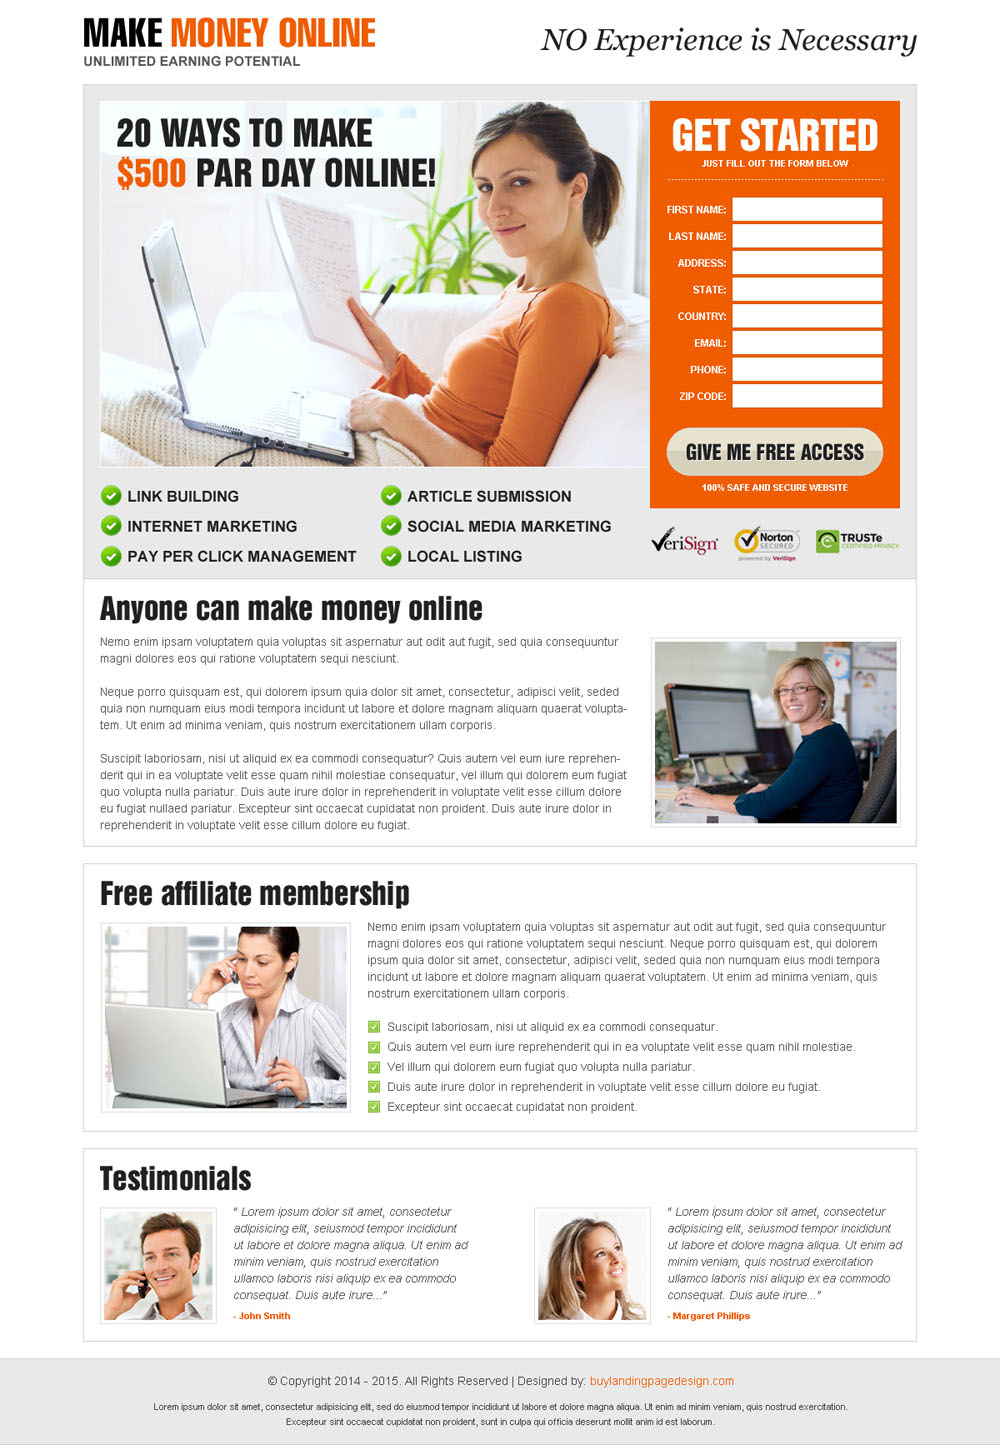 anyone-can-make-money-online-business-oppoturnity-landing-page-design-templates-018